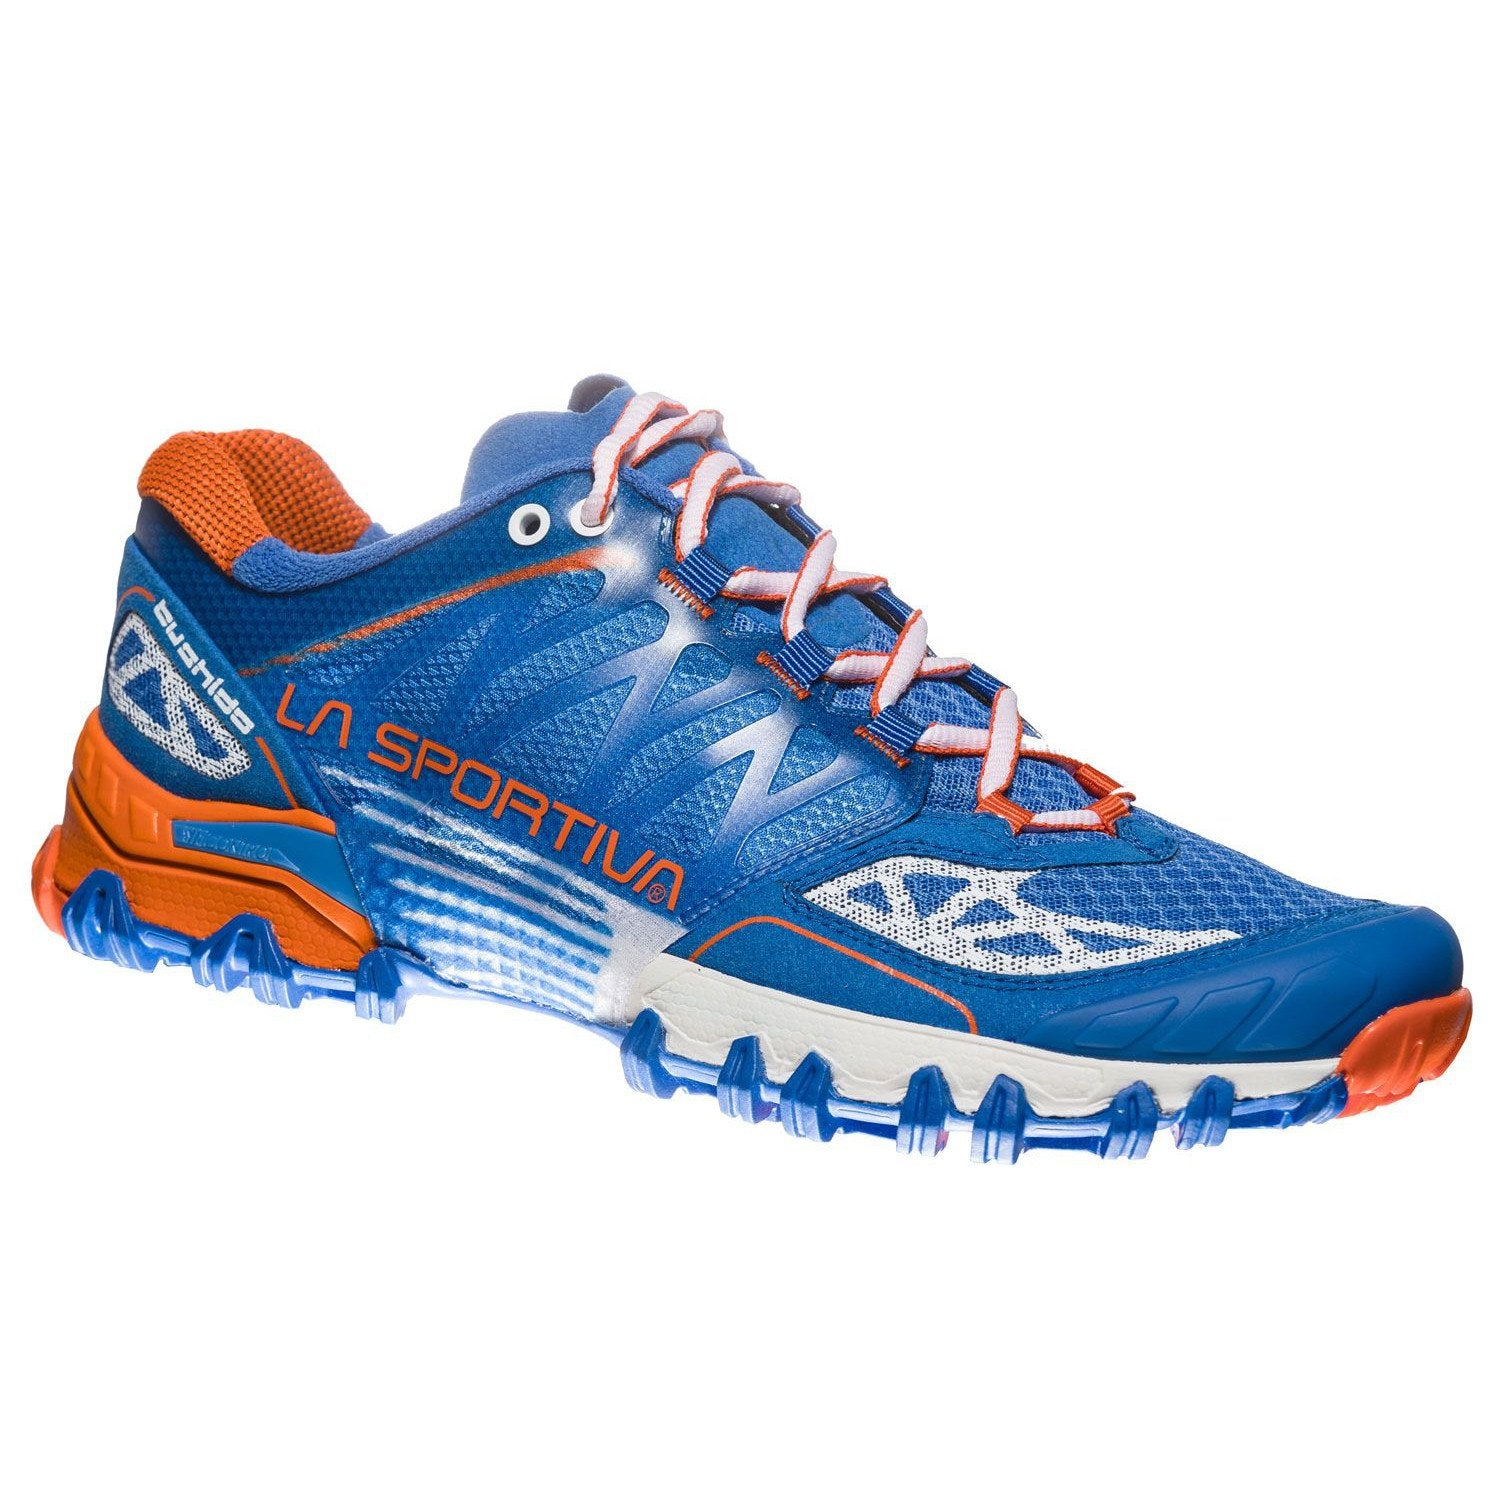 La Sportiva Bushido Womens trail running shoe, outer side view in blue, white and orange colours